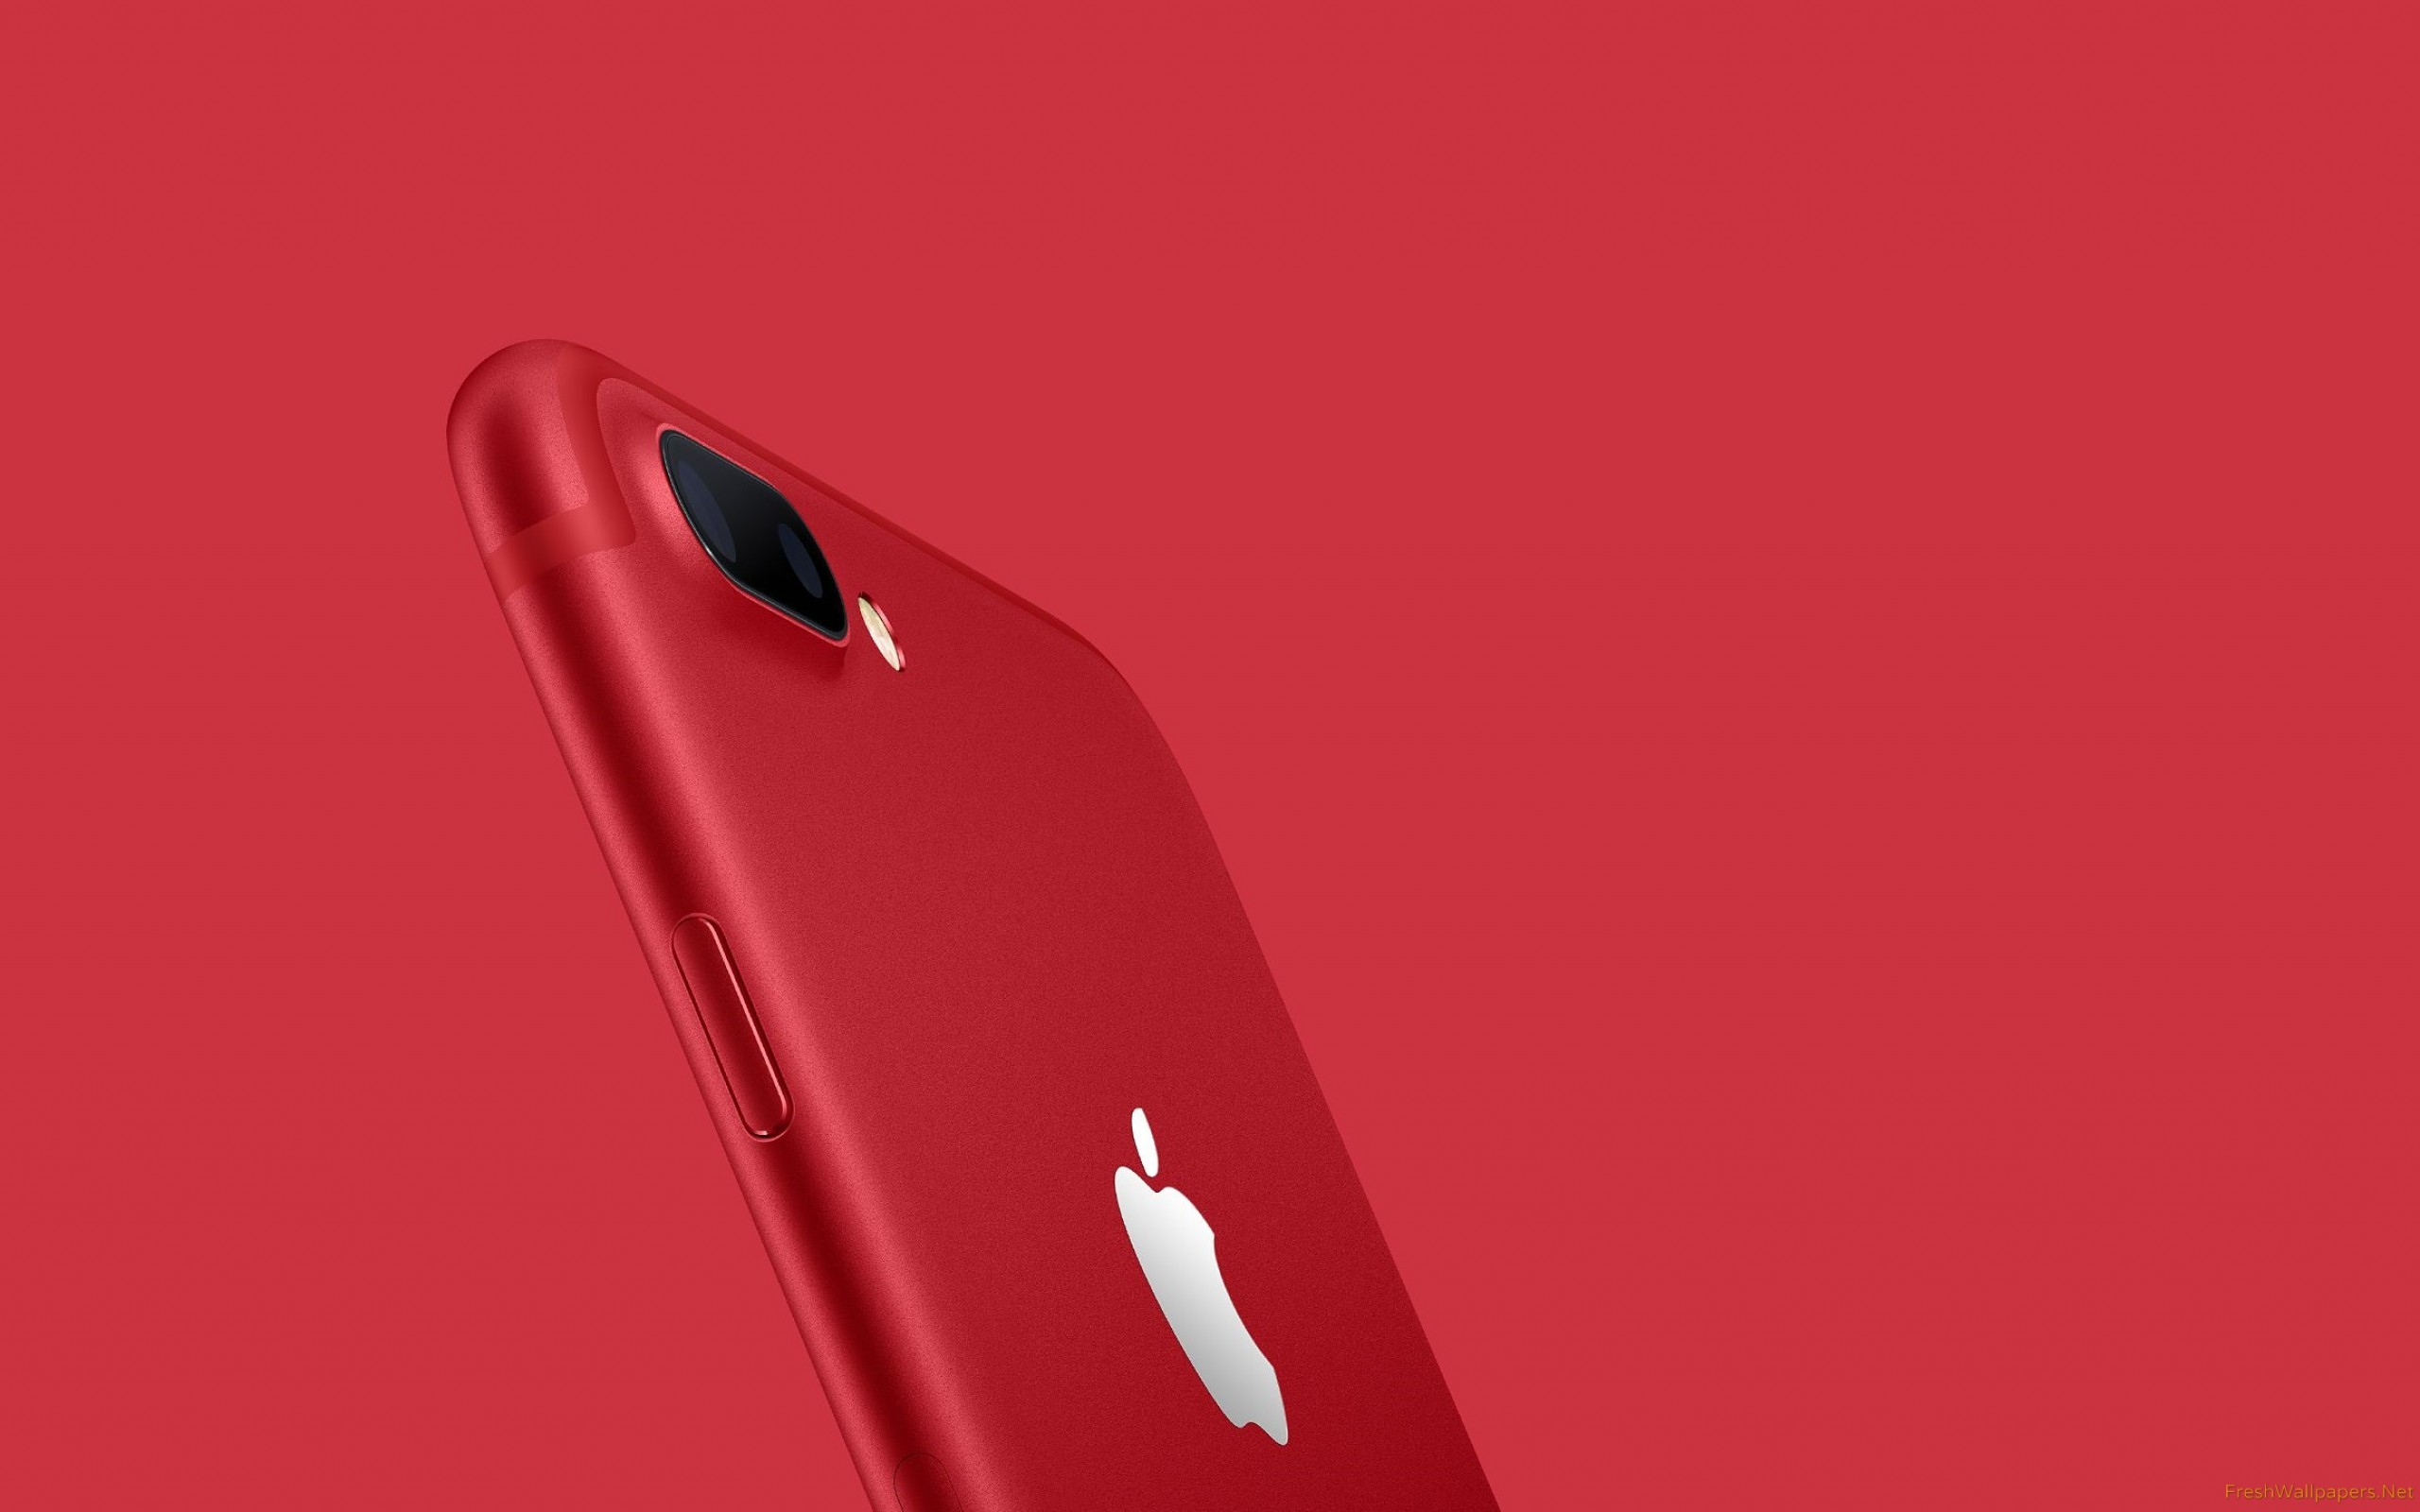 Iphone Red 7 Plus - HD Wallpaper